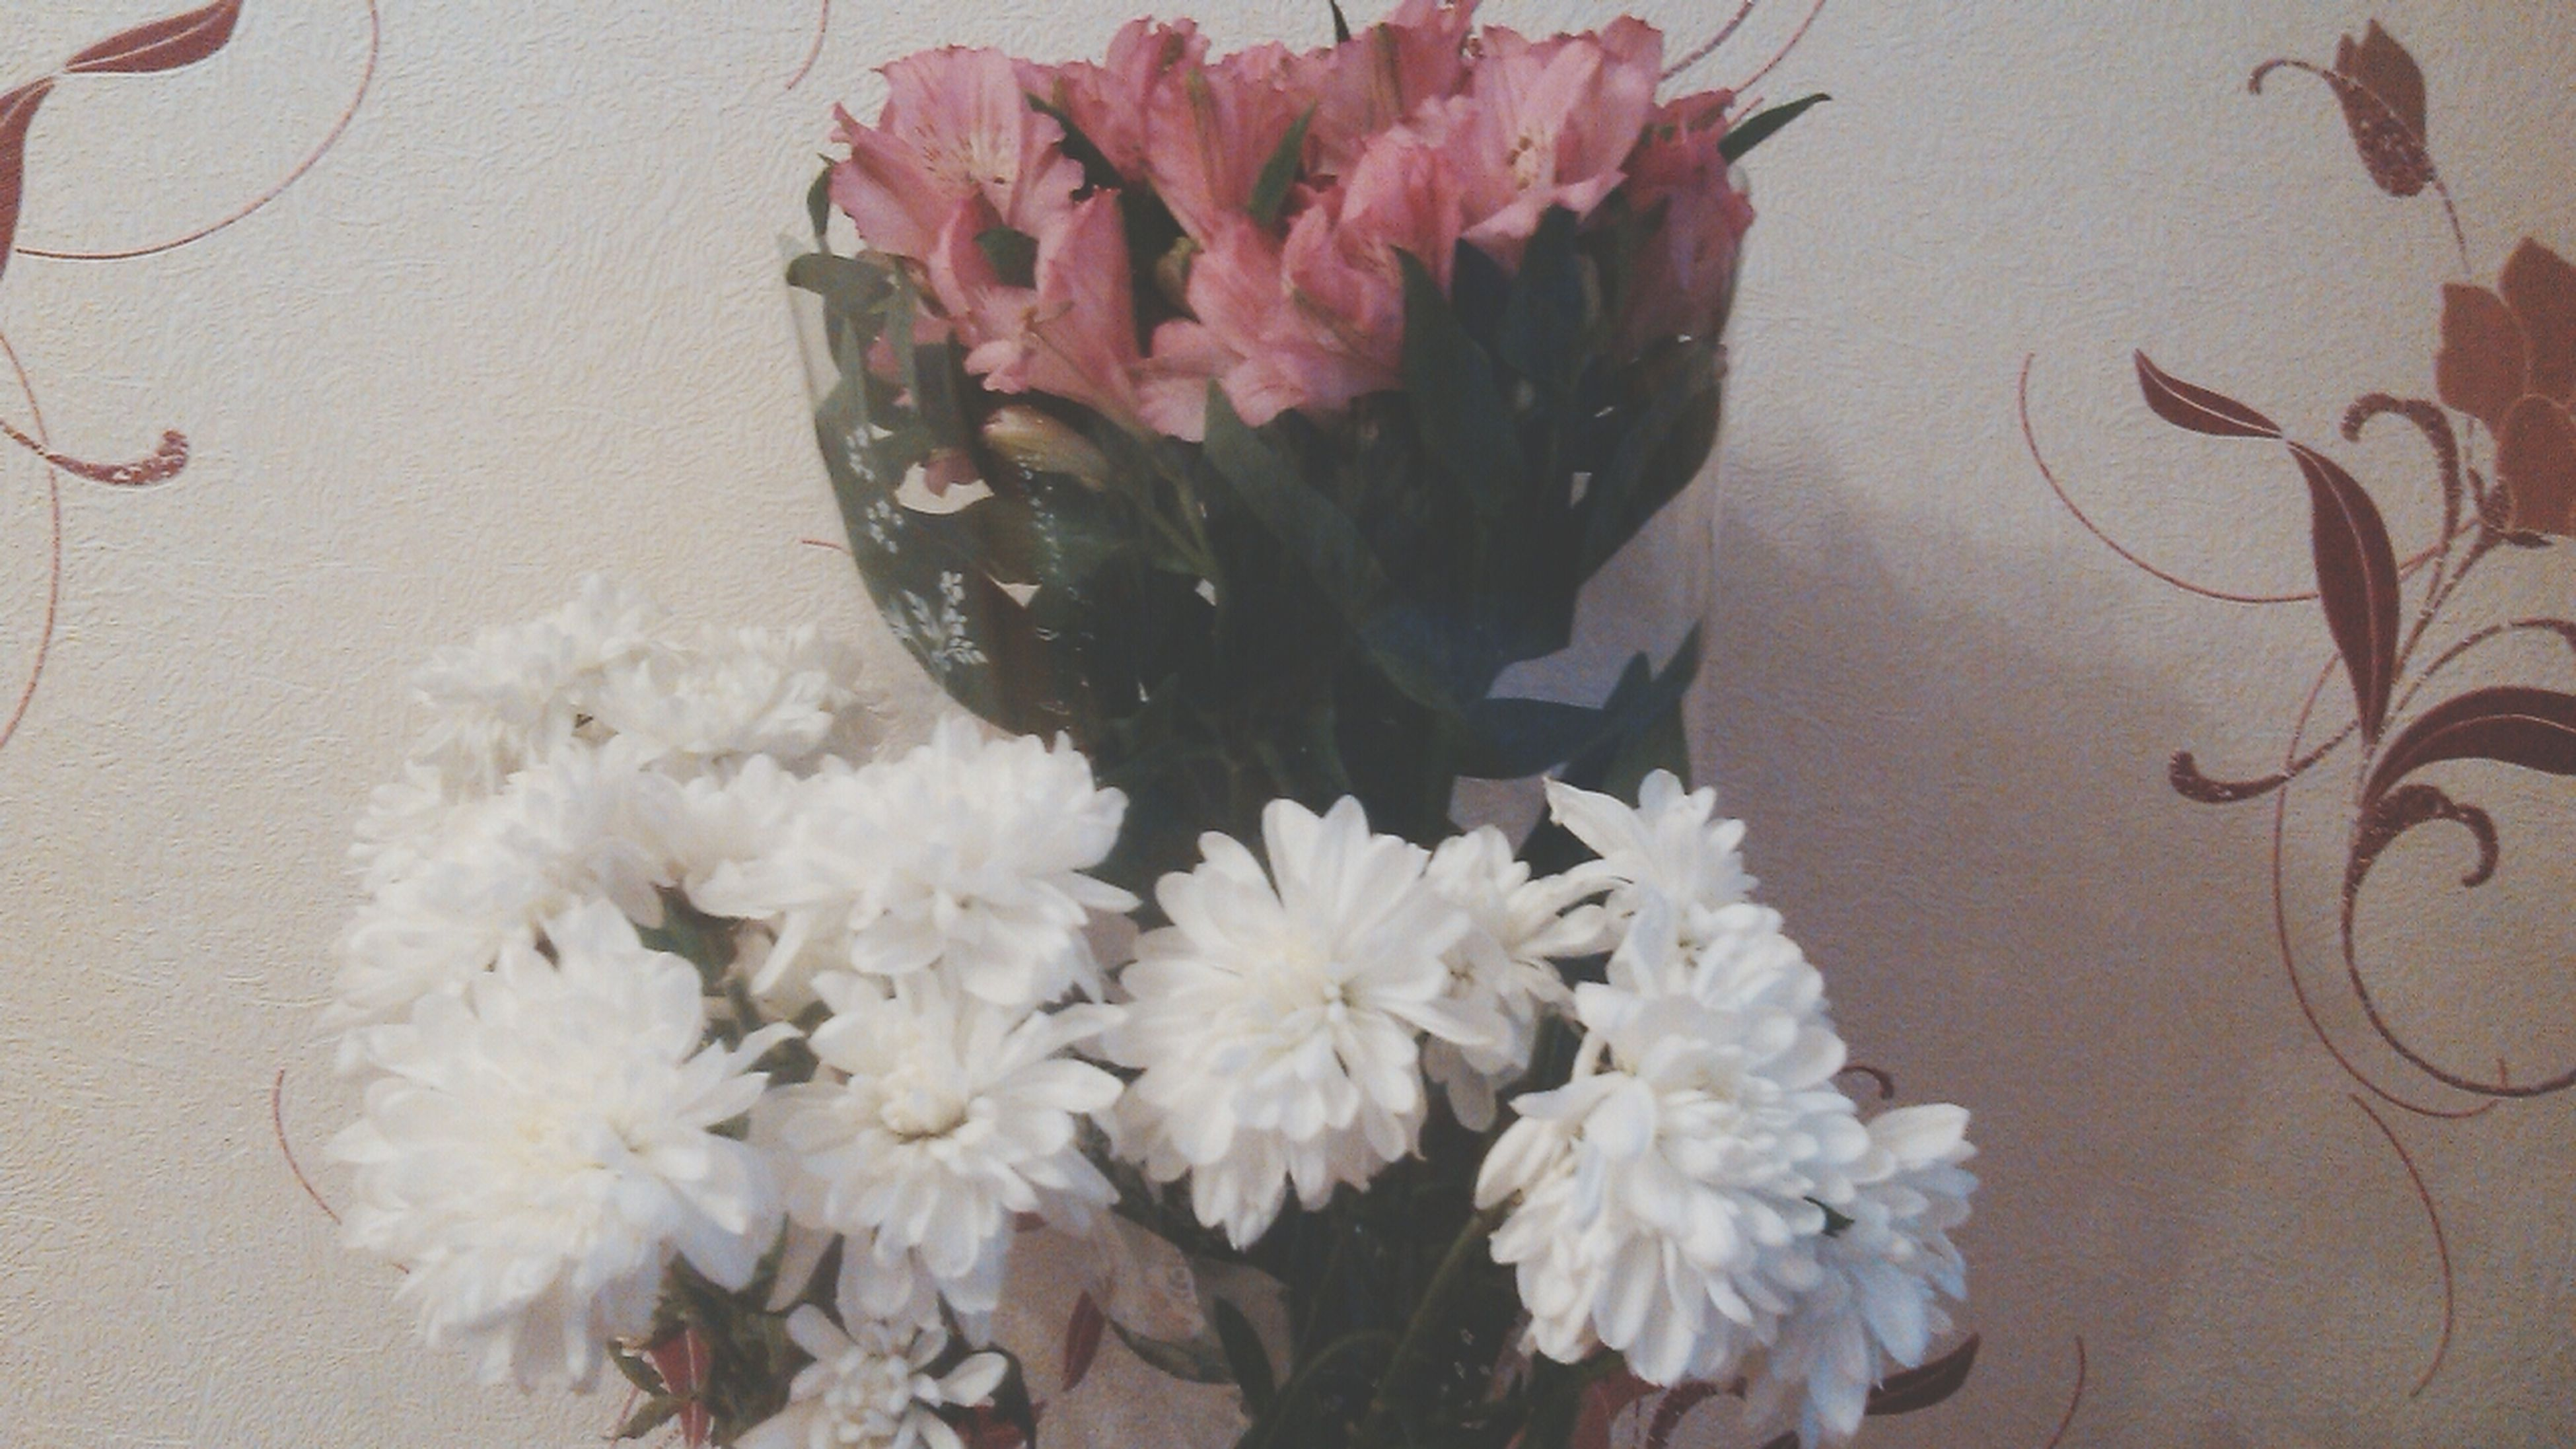 flower, freshness, indoors, petal, fragility, high angle view, flower head, vase, table, close-up, decoration, still life, pink color, rose - flower, white color, bouquet, beauty in nature, plant, nature, no people